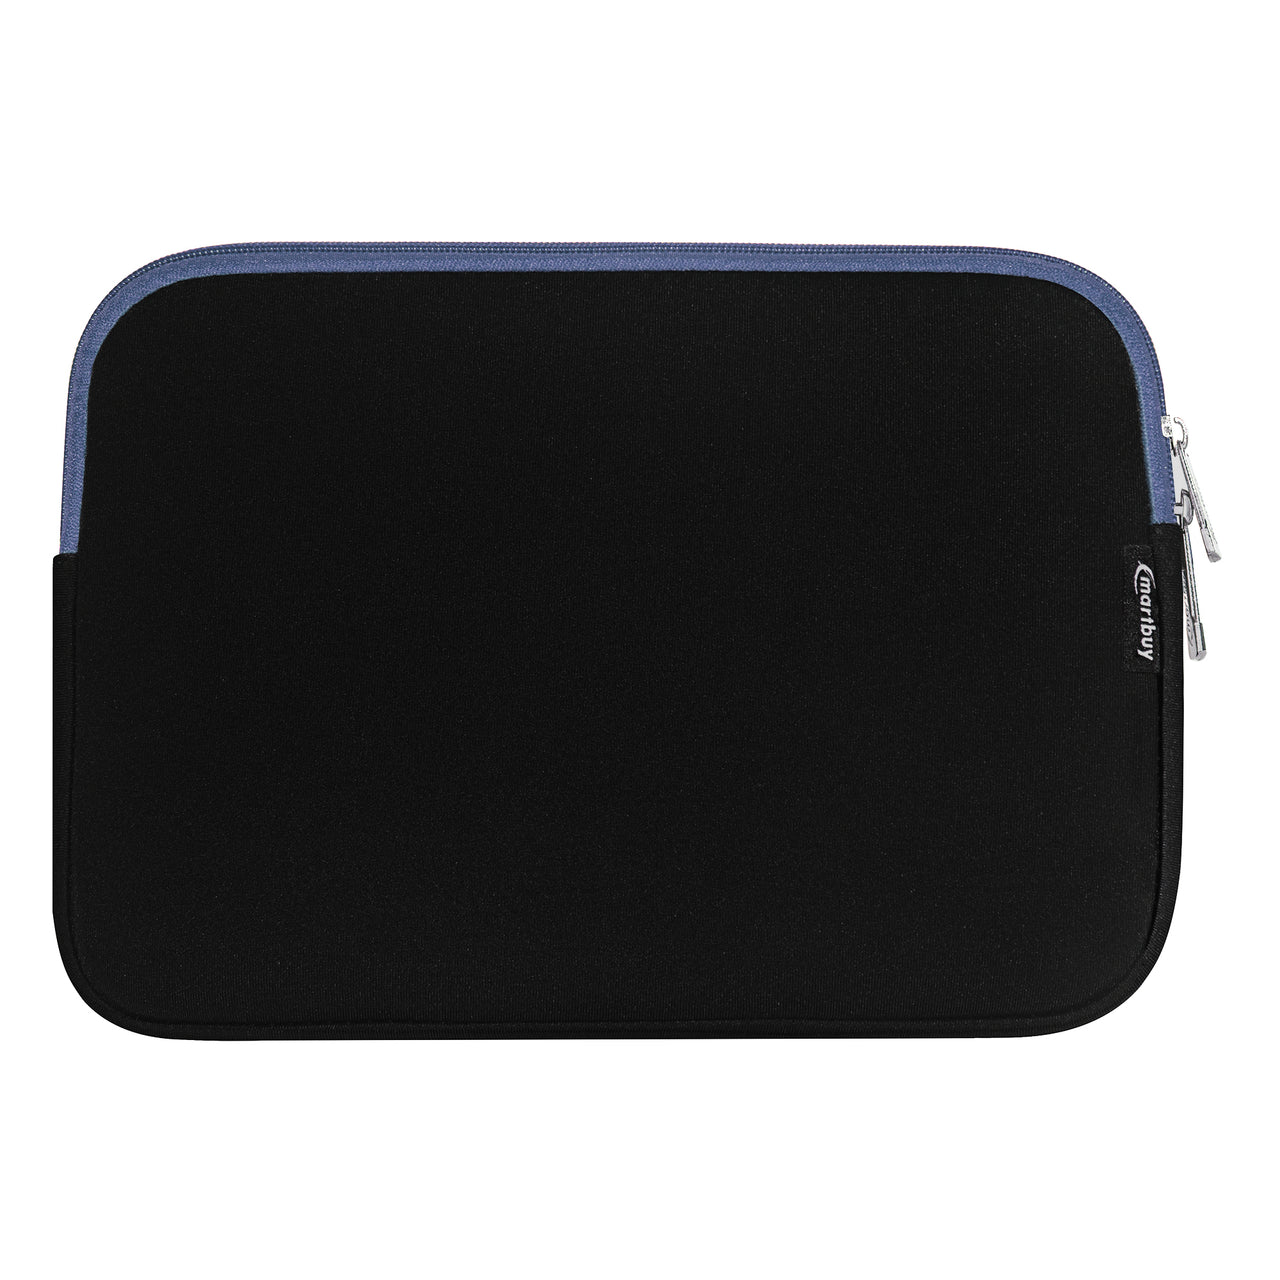 Universal Neoprene Case - Black Midnight Blue